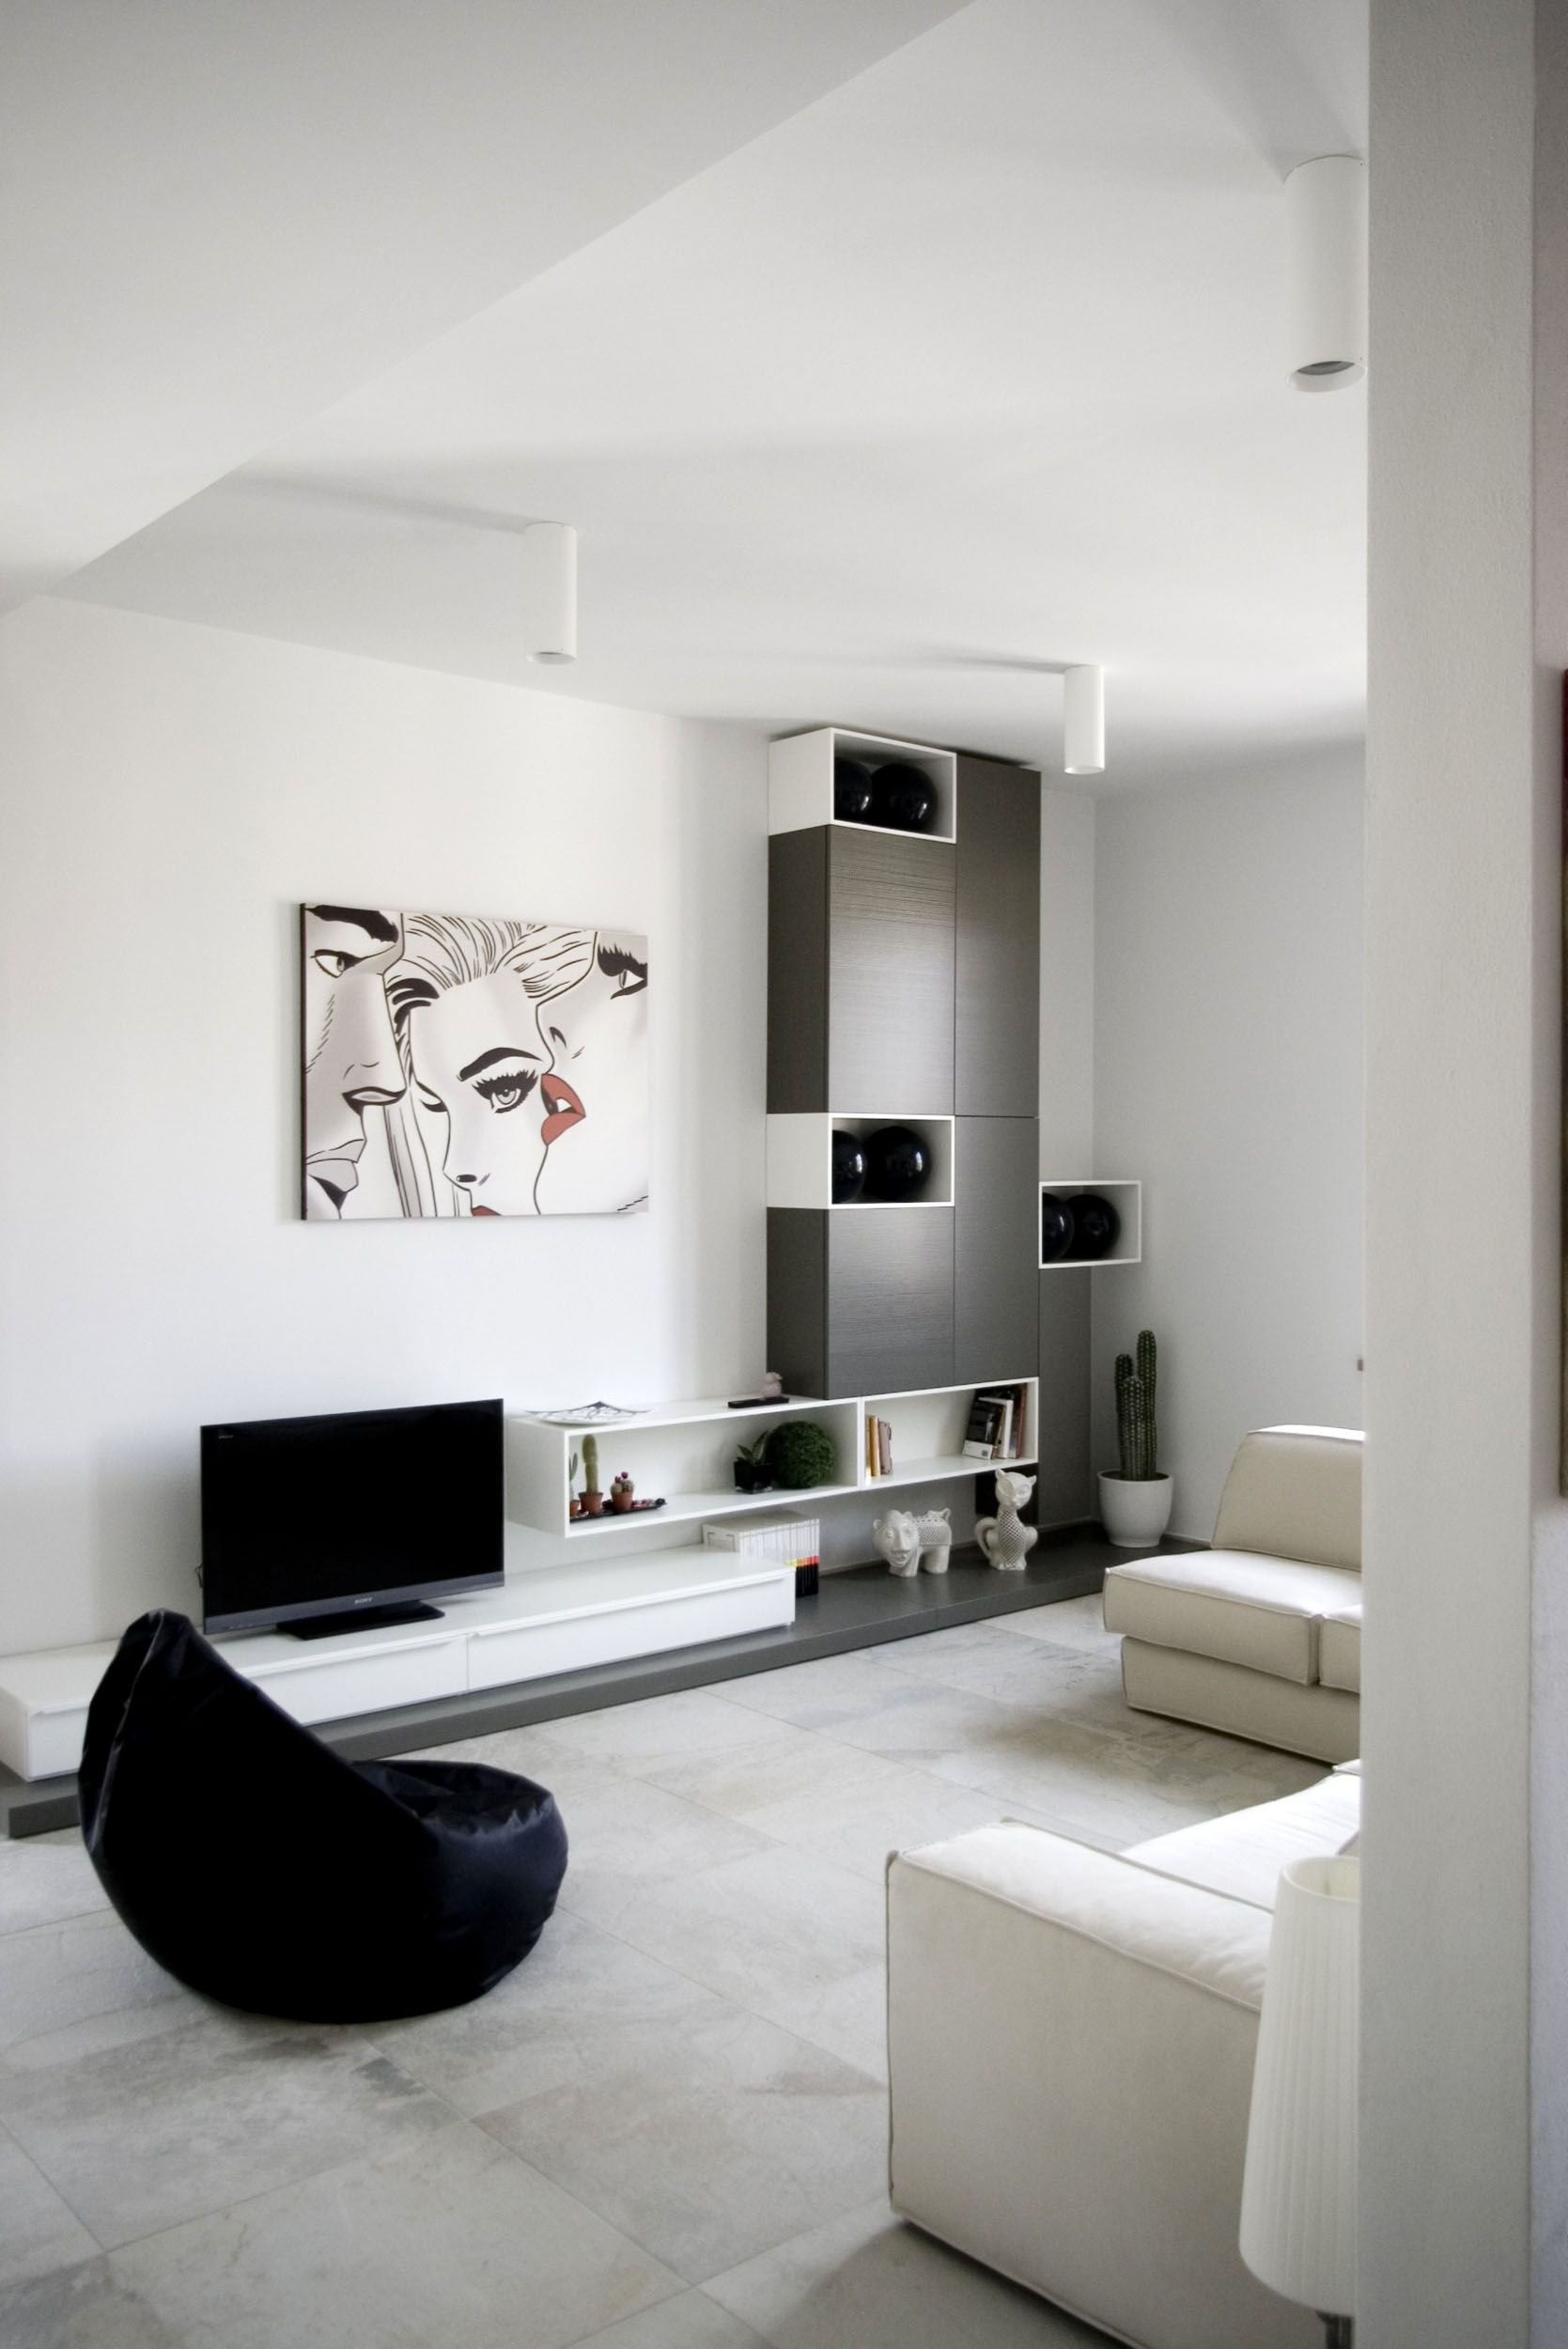 condo living room interior design - 1000+ images about home idea on Pinterest Singapore, Interior ...